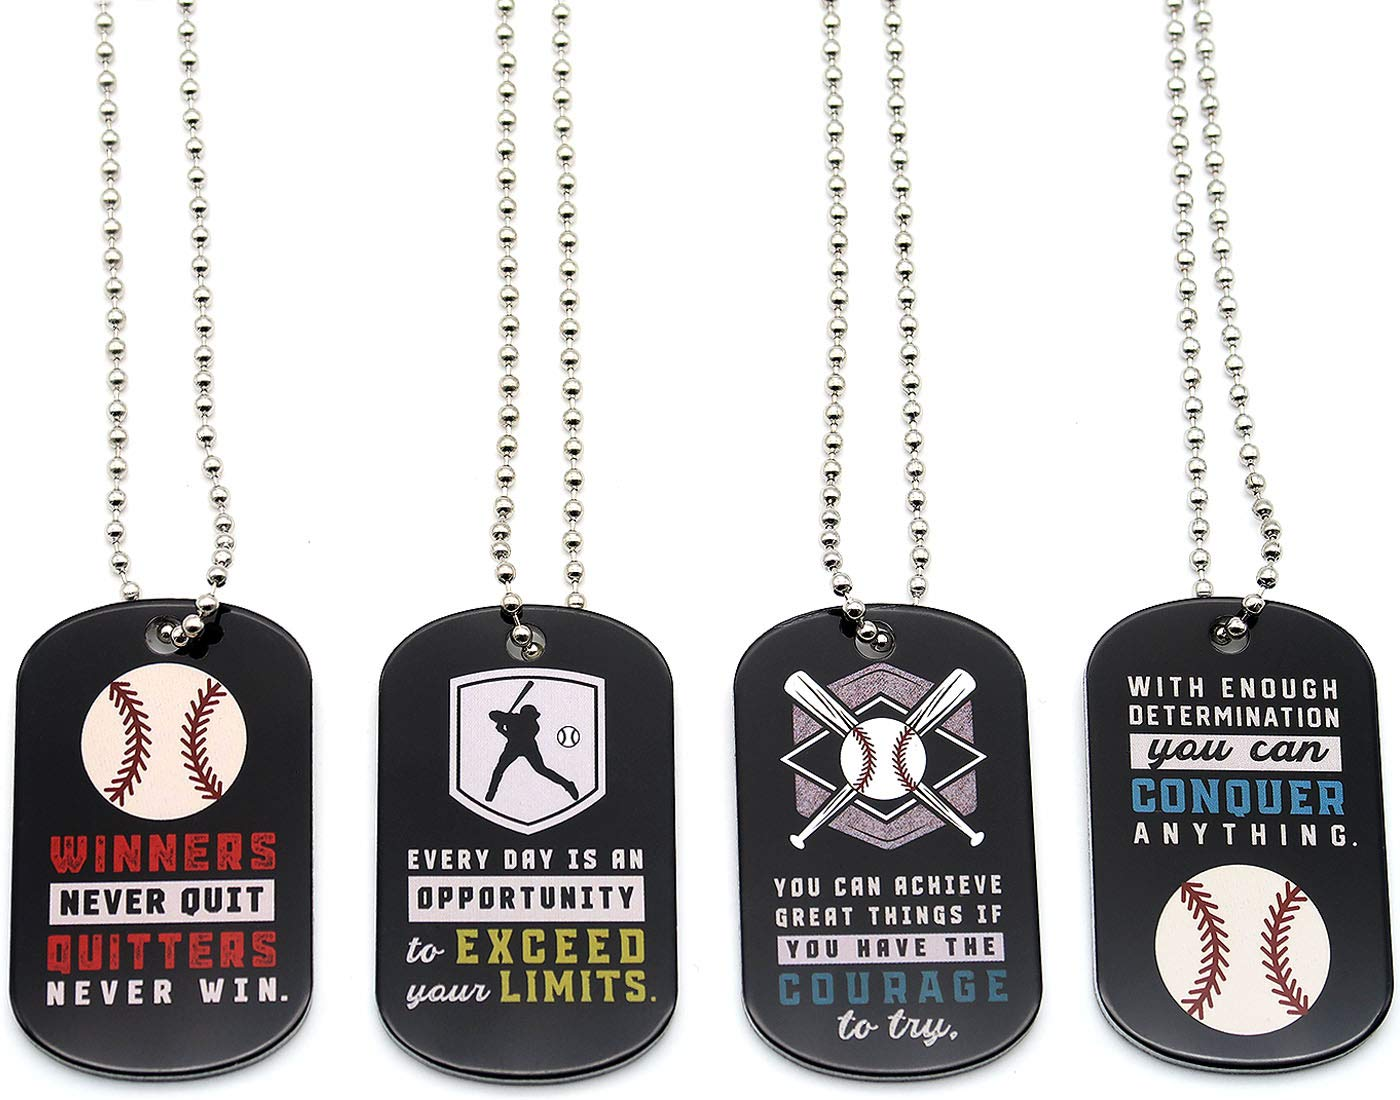 (12-Pack) Baseball Motivational Dog Tag Necklaces - Wholesale Bulk Pack of 1 Dozen Necklaces - Party Favors Sports Gifts Uniform Supplies for Baseball Players Coaches Fans Team Members by Inkstone (Image #1)